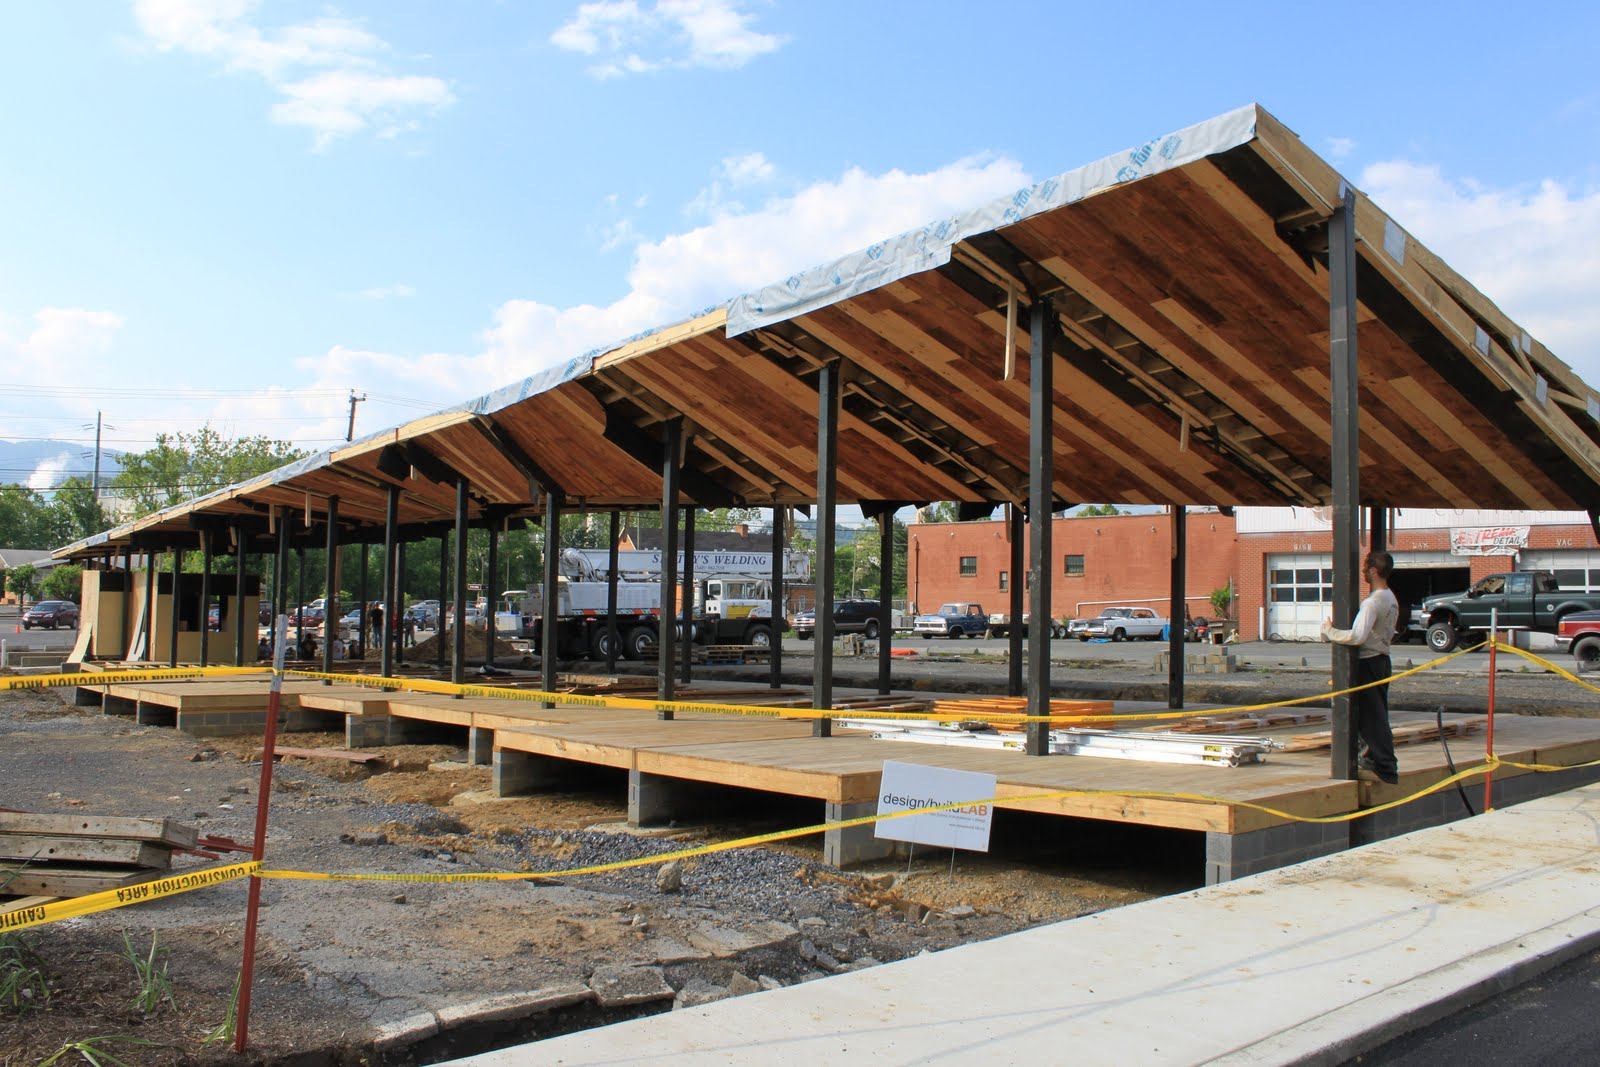 The roof was finished being fully installed on Friday evening. This photo shows the roof stretched along the length of the market space from Main St. where ... & design/buildLAB: Roof Installation Phase II memphite.com